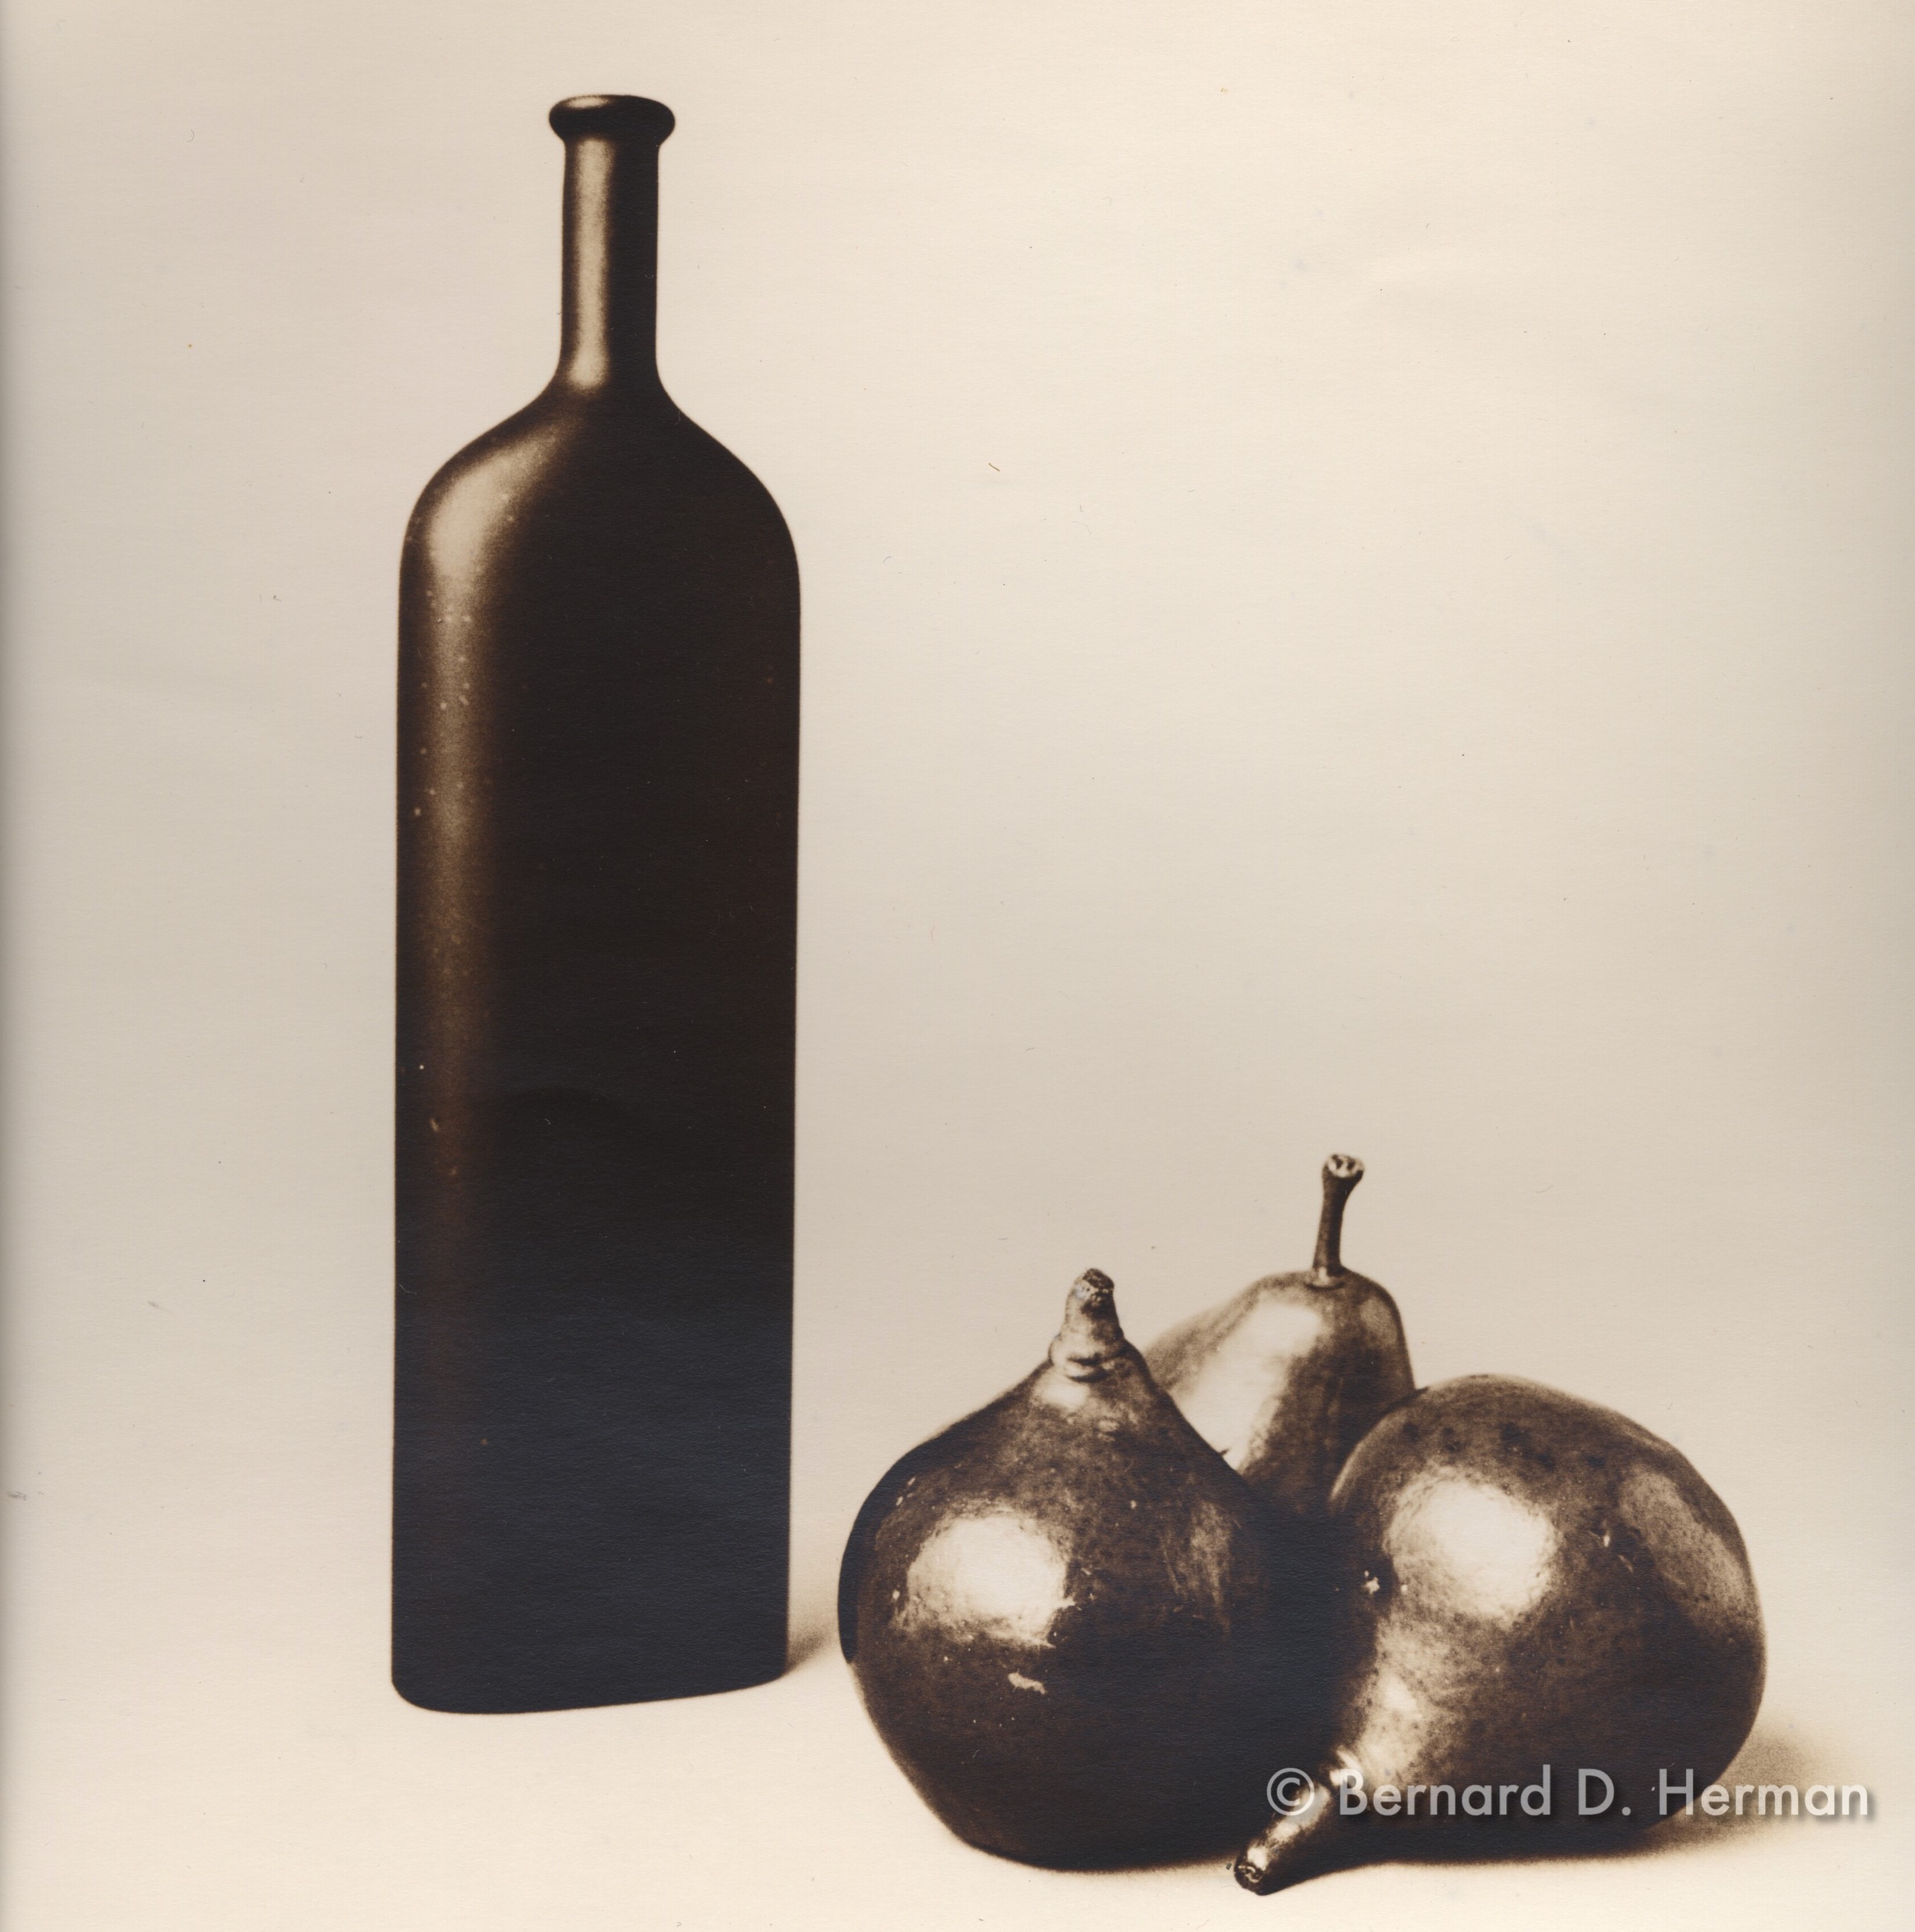 Pears and Bottle